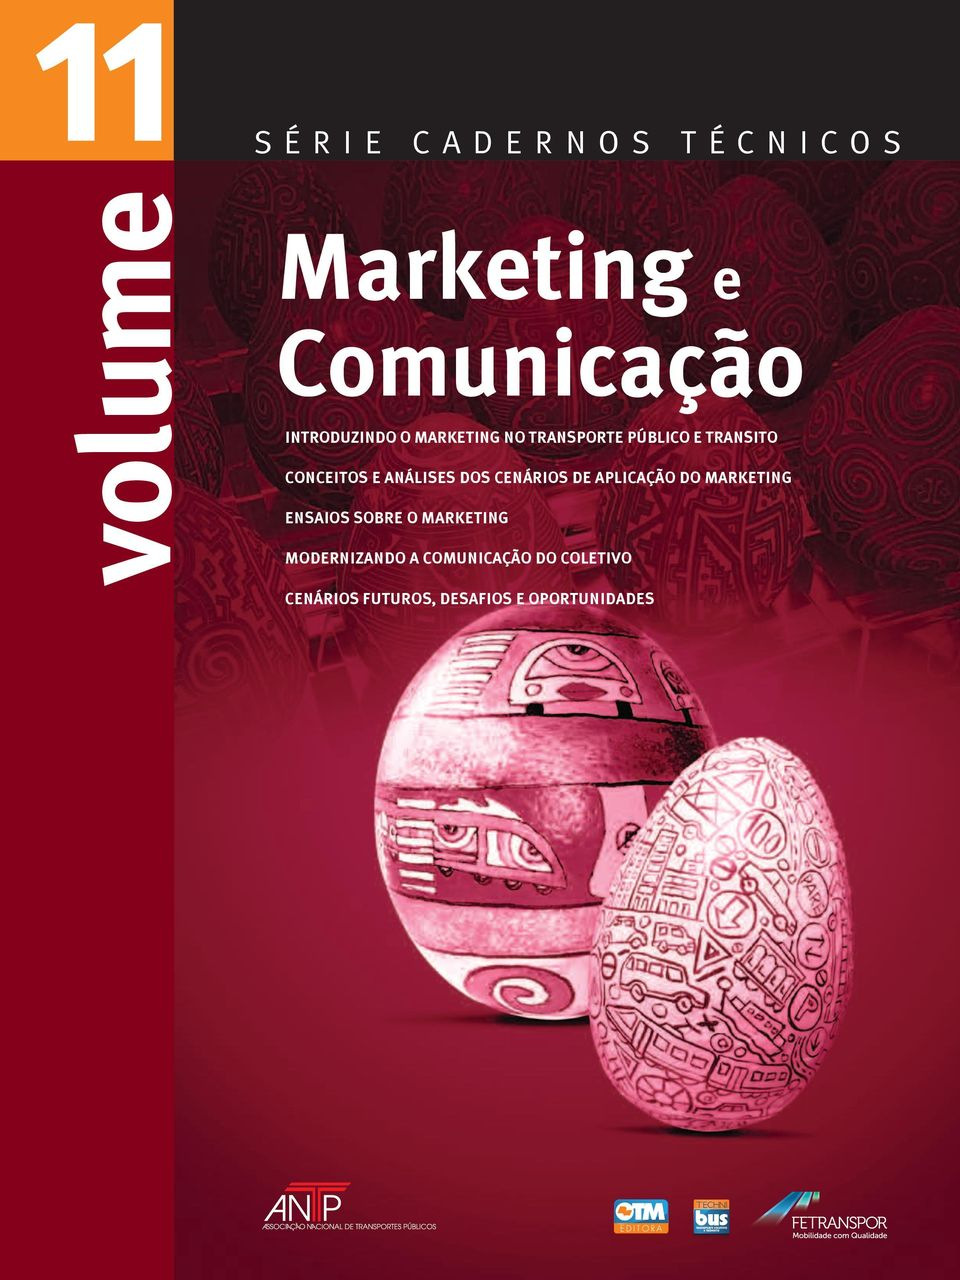 Marketing Ensaios sobre o Marketing modernizando a comunicação do coletivo Cenários